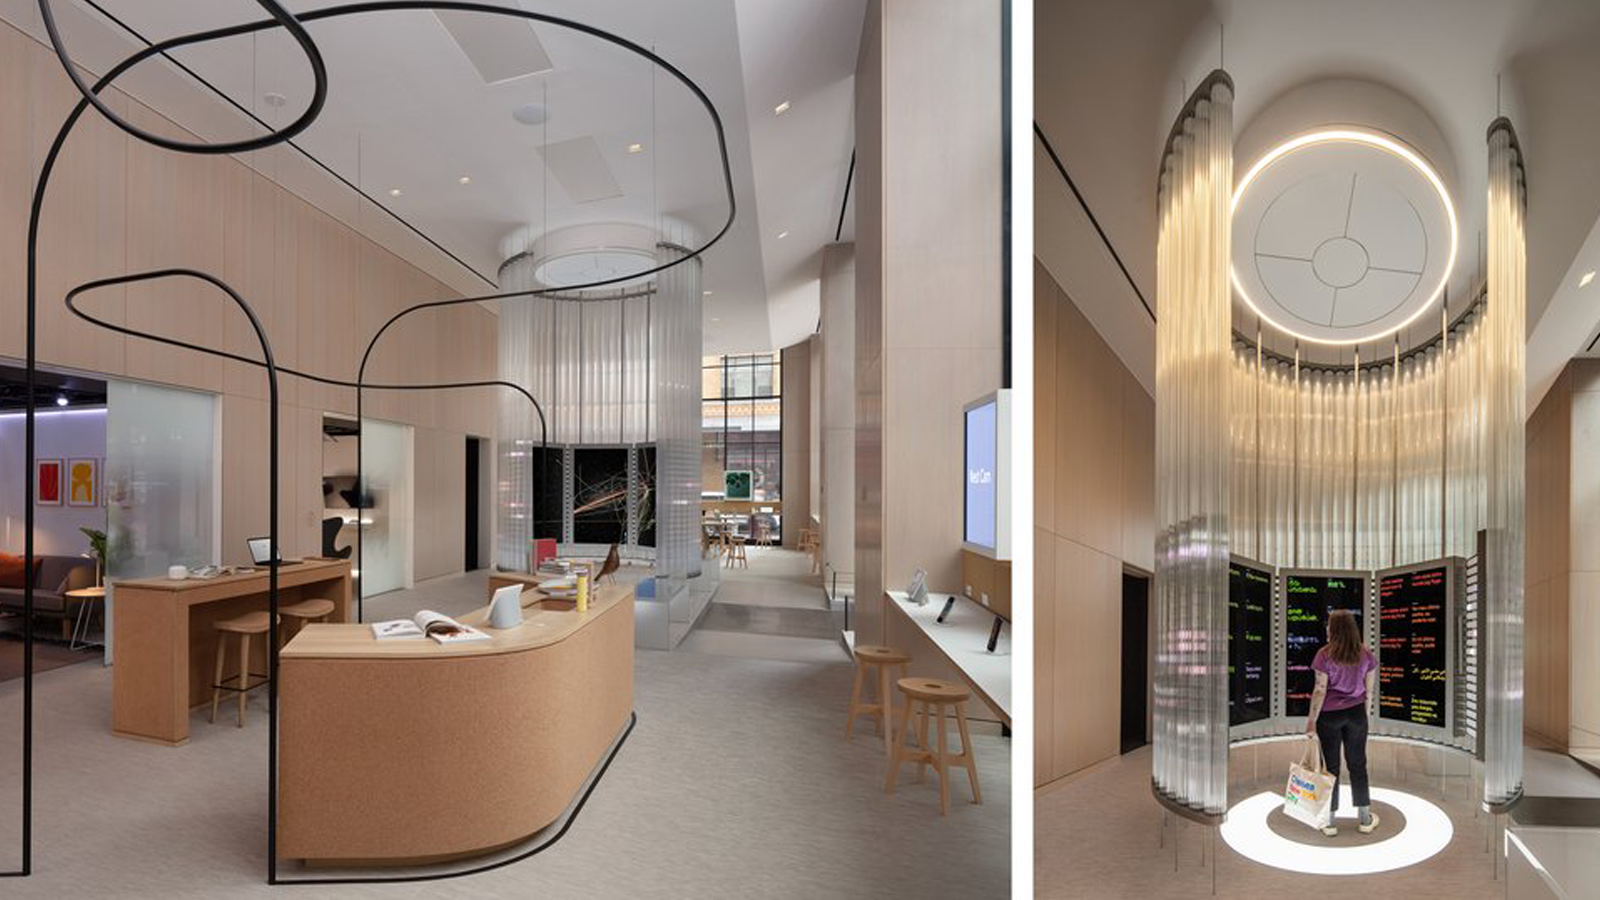 Two views of the store's interior entryway, with a desk and interactive structure